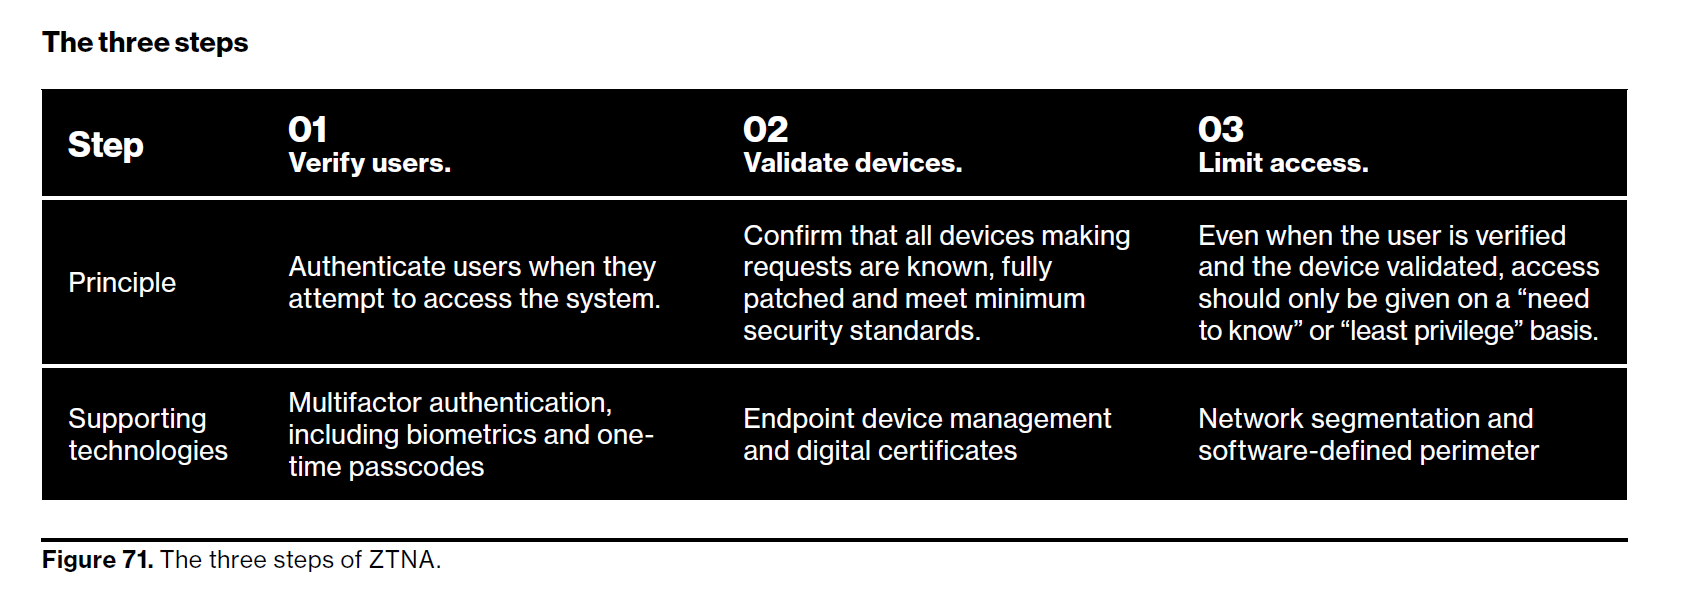 View a larger version of this image here. (Source: Verizon Business)